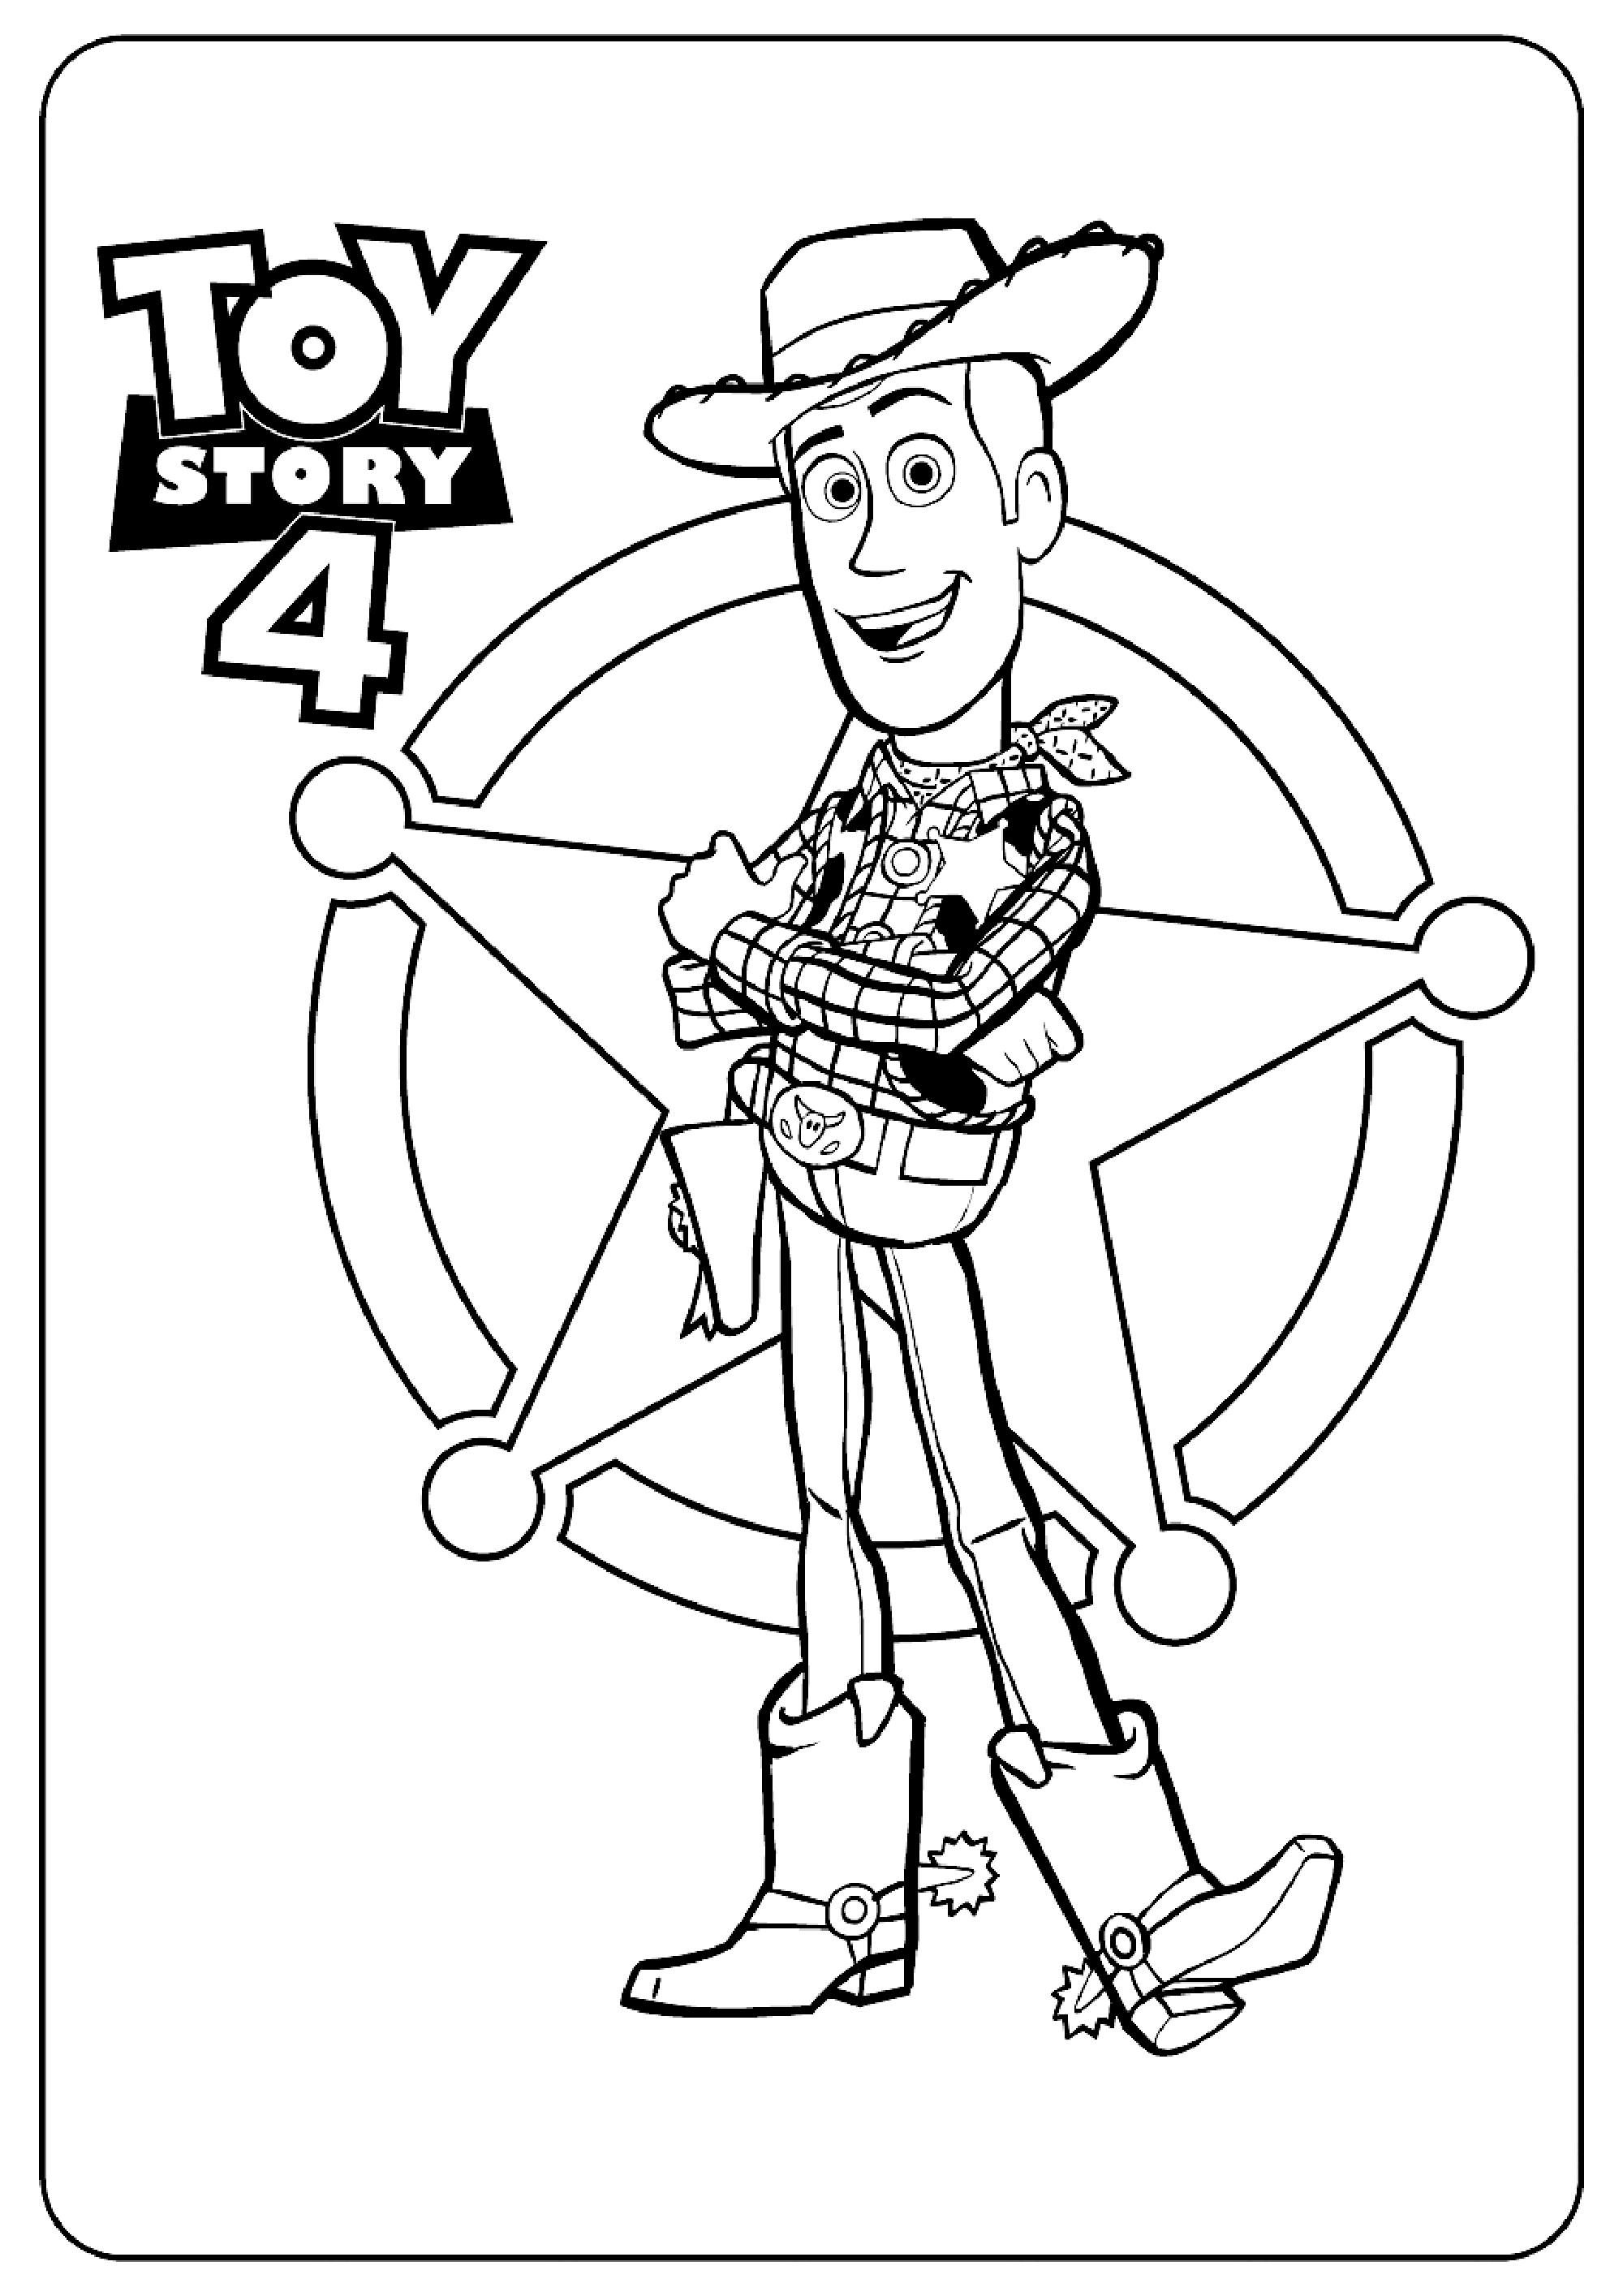 toy story 4 coloring rex cool toy story 4 coloring pages toy story 4 kids 4 coloring toy story